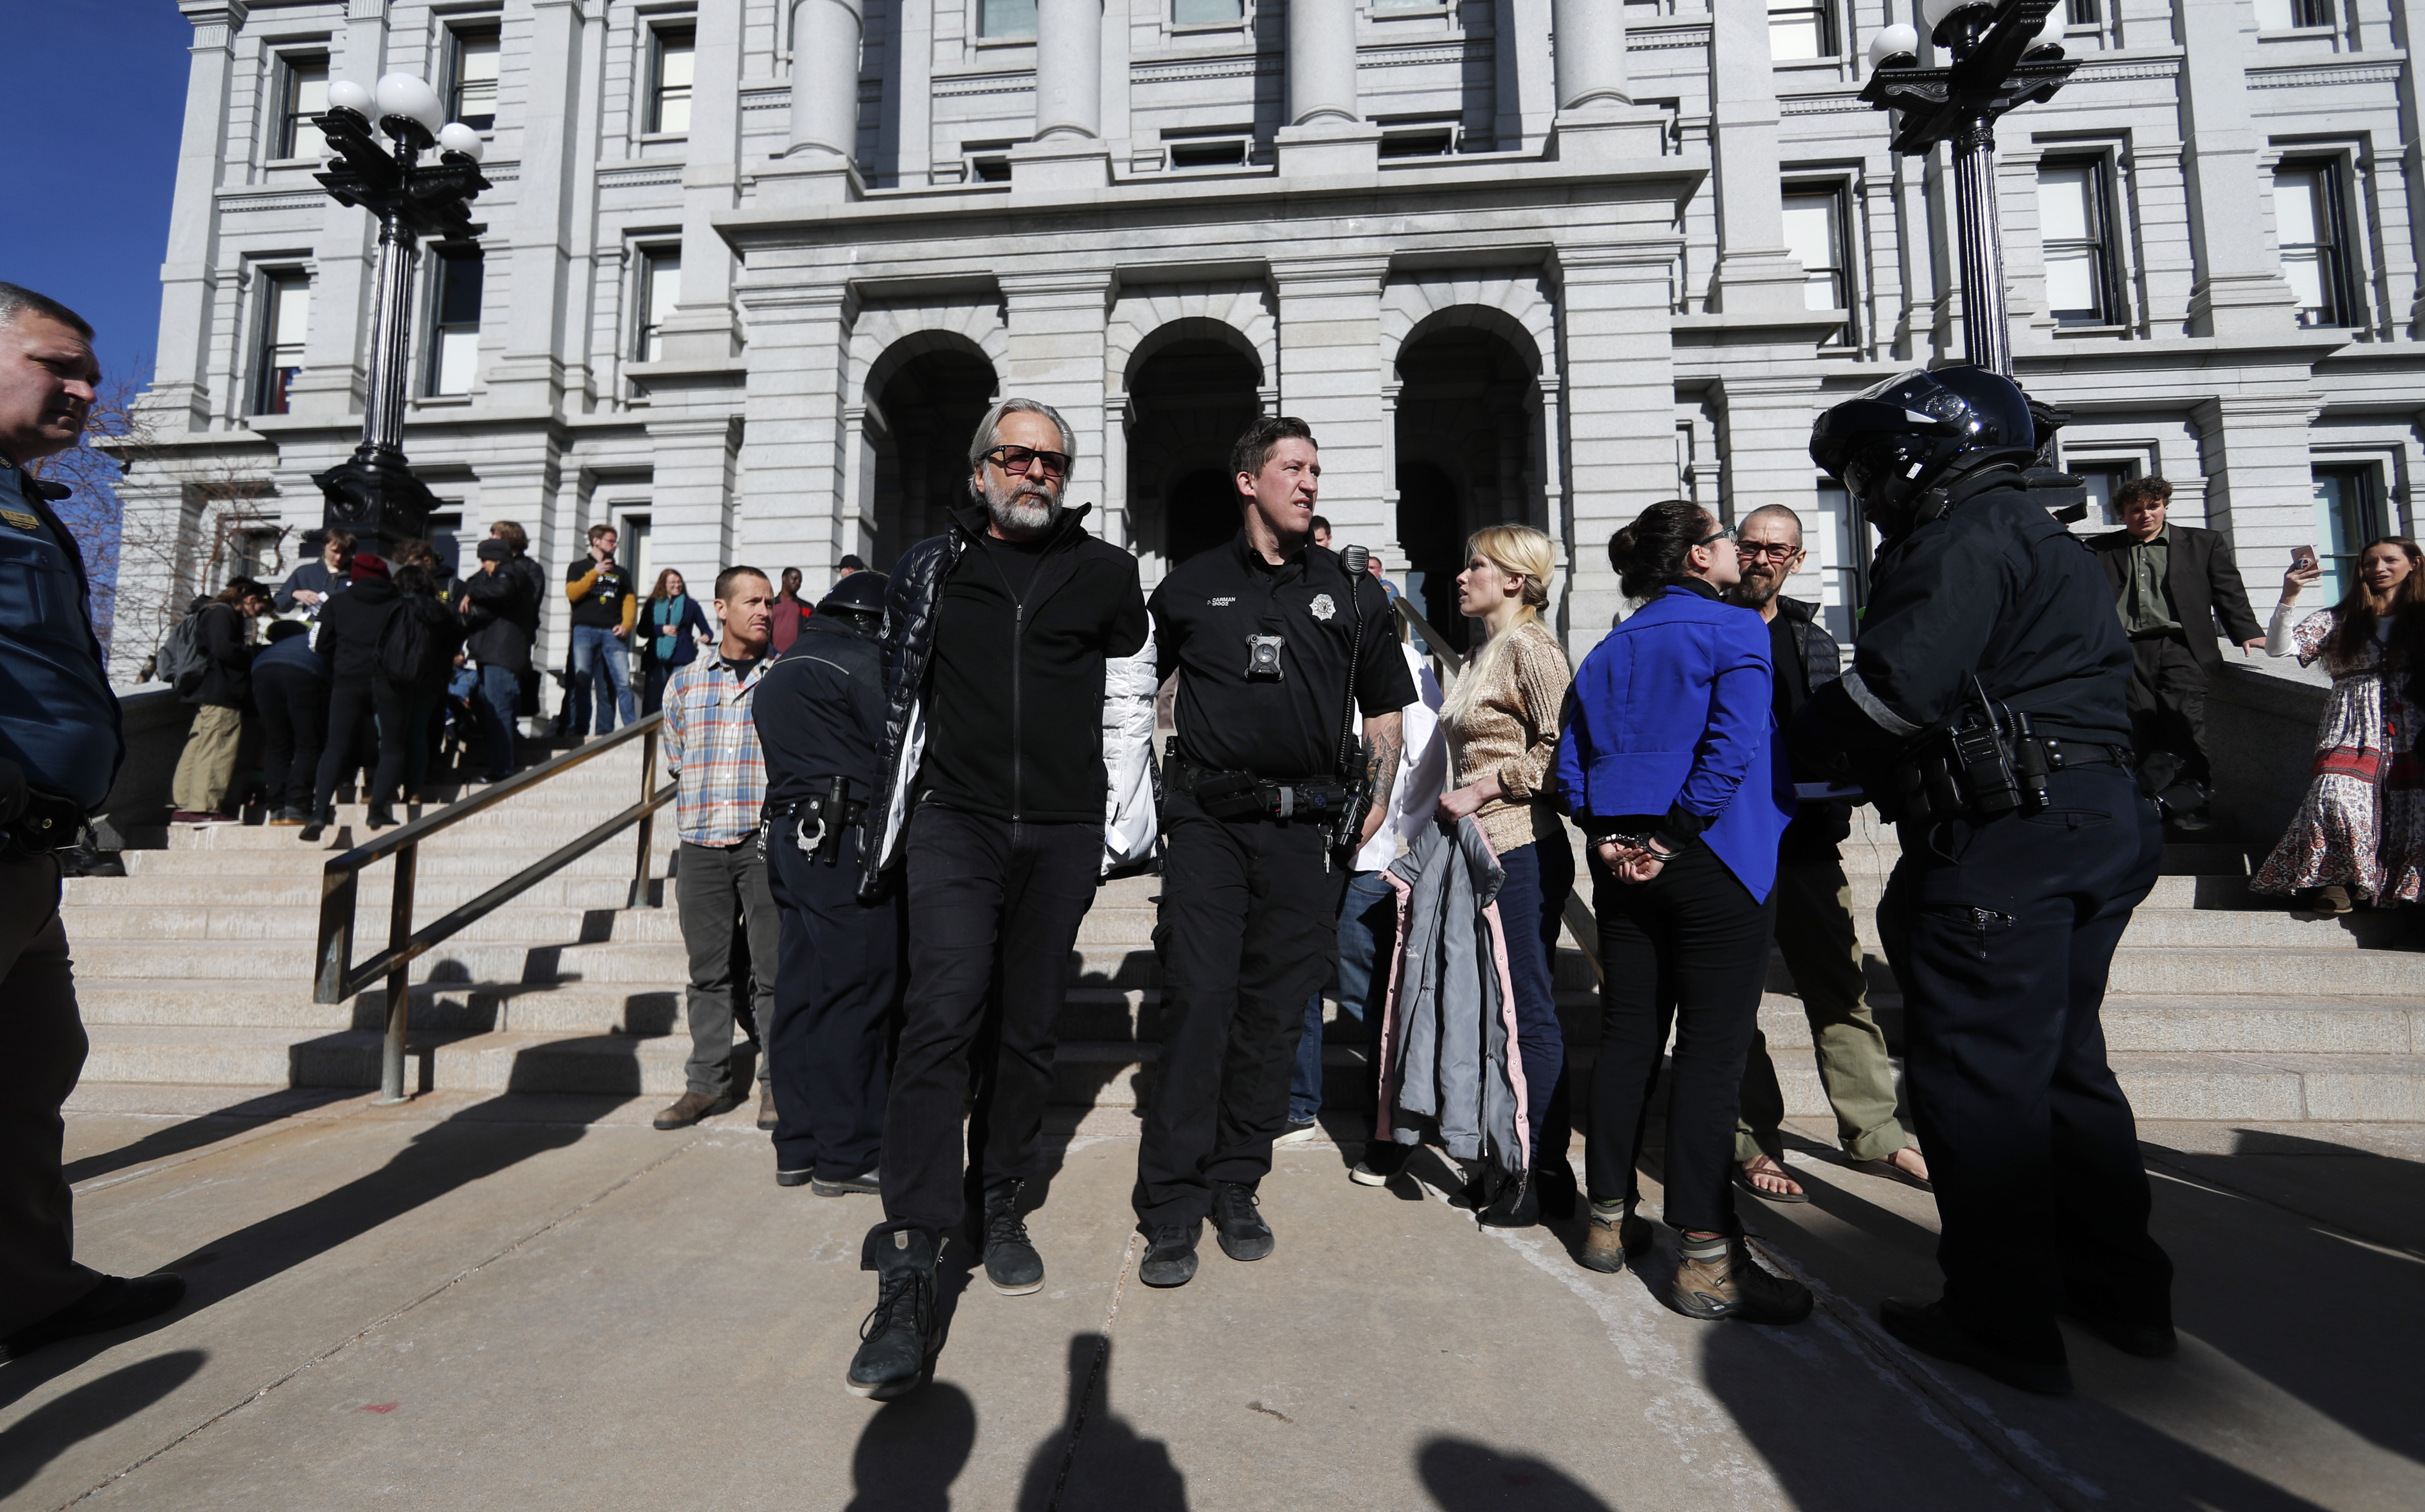 Colorado climate change protesters arrested for demonstration at State Capitol